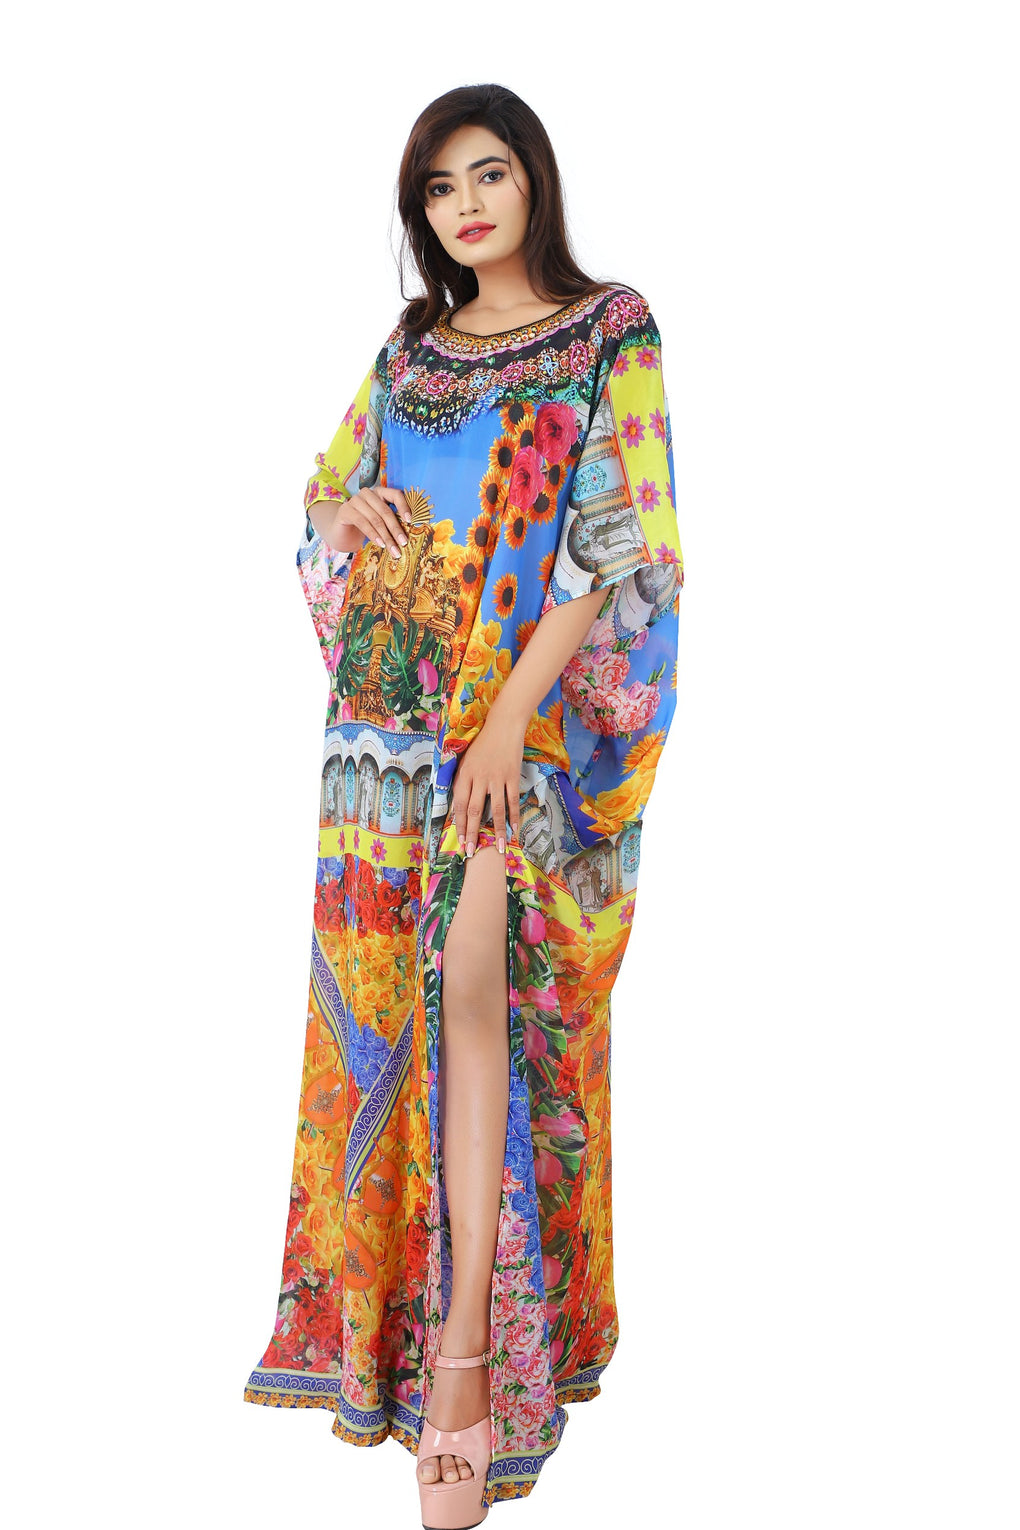 Backyard of fragrant flowers on Silk maxi long kaftan ornamented with beads - Silk kaftan